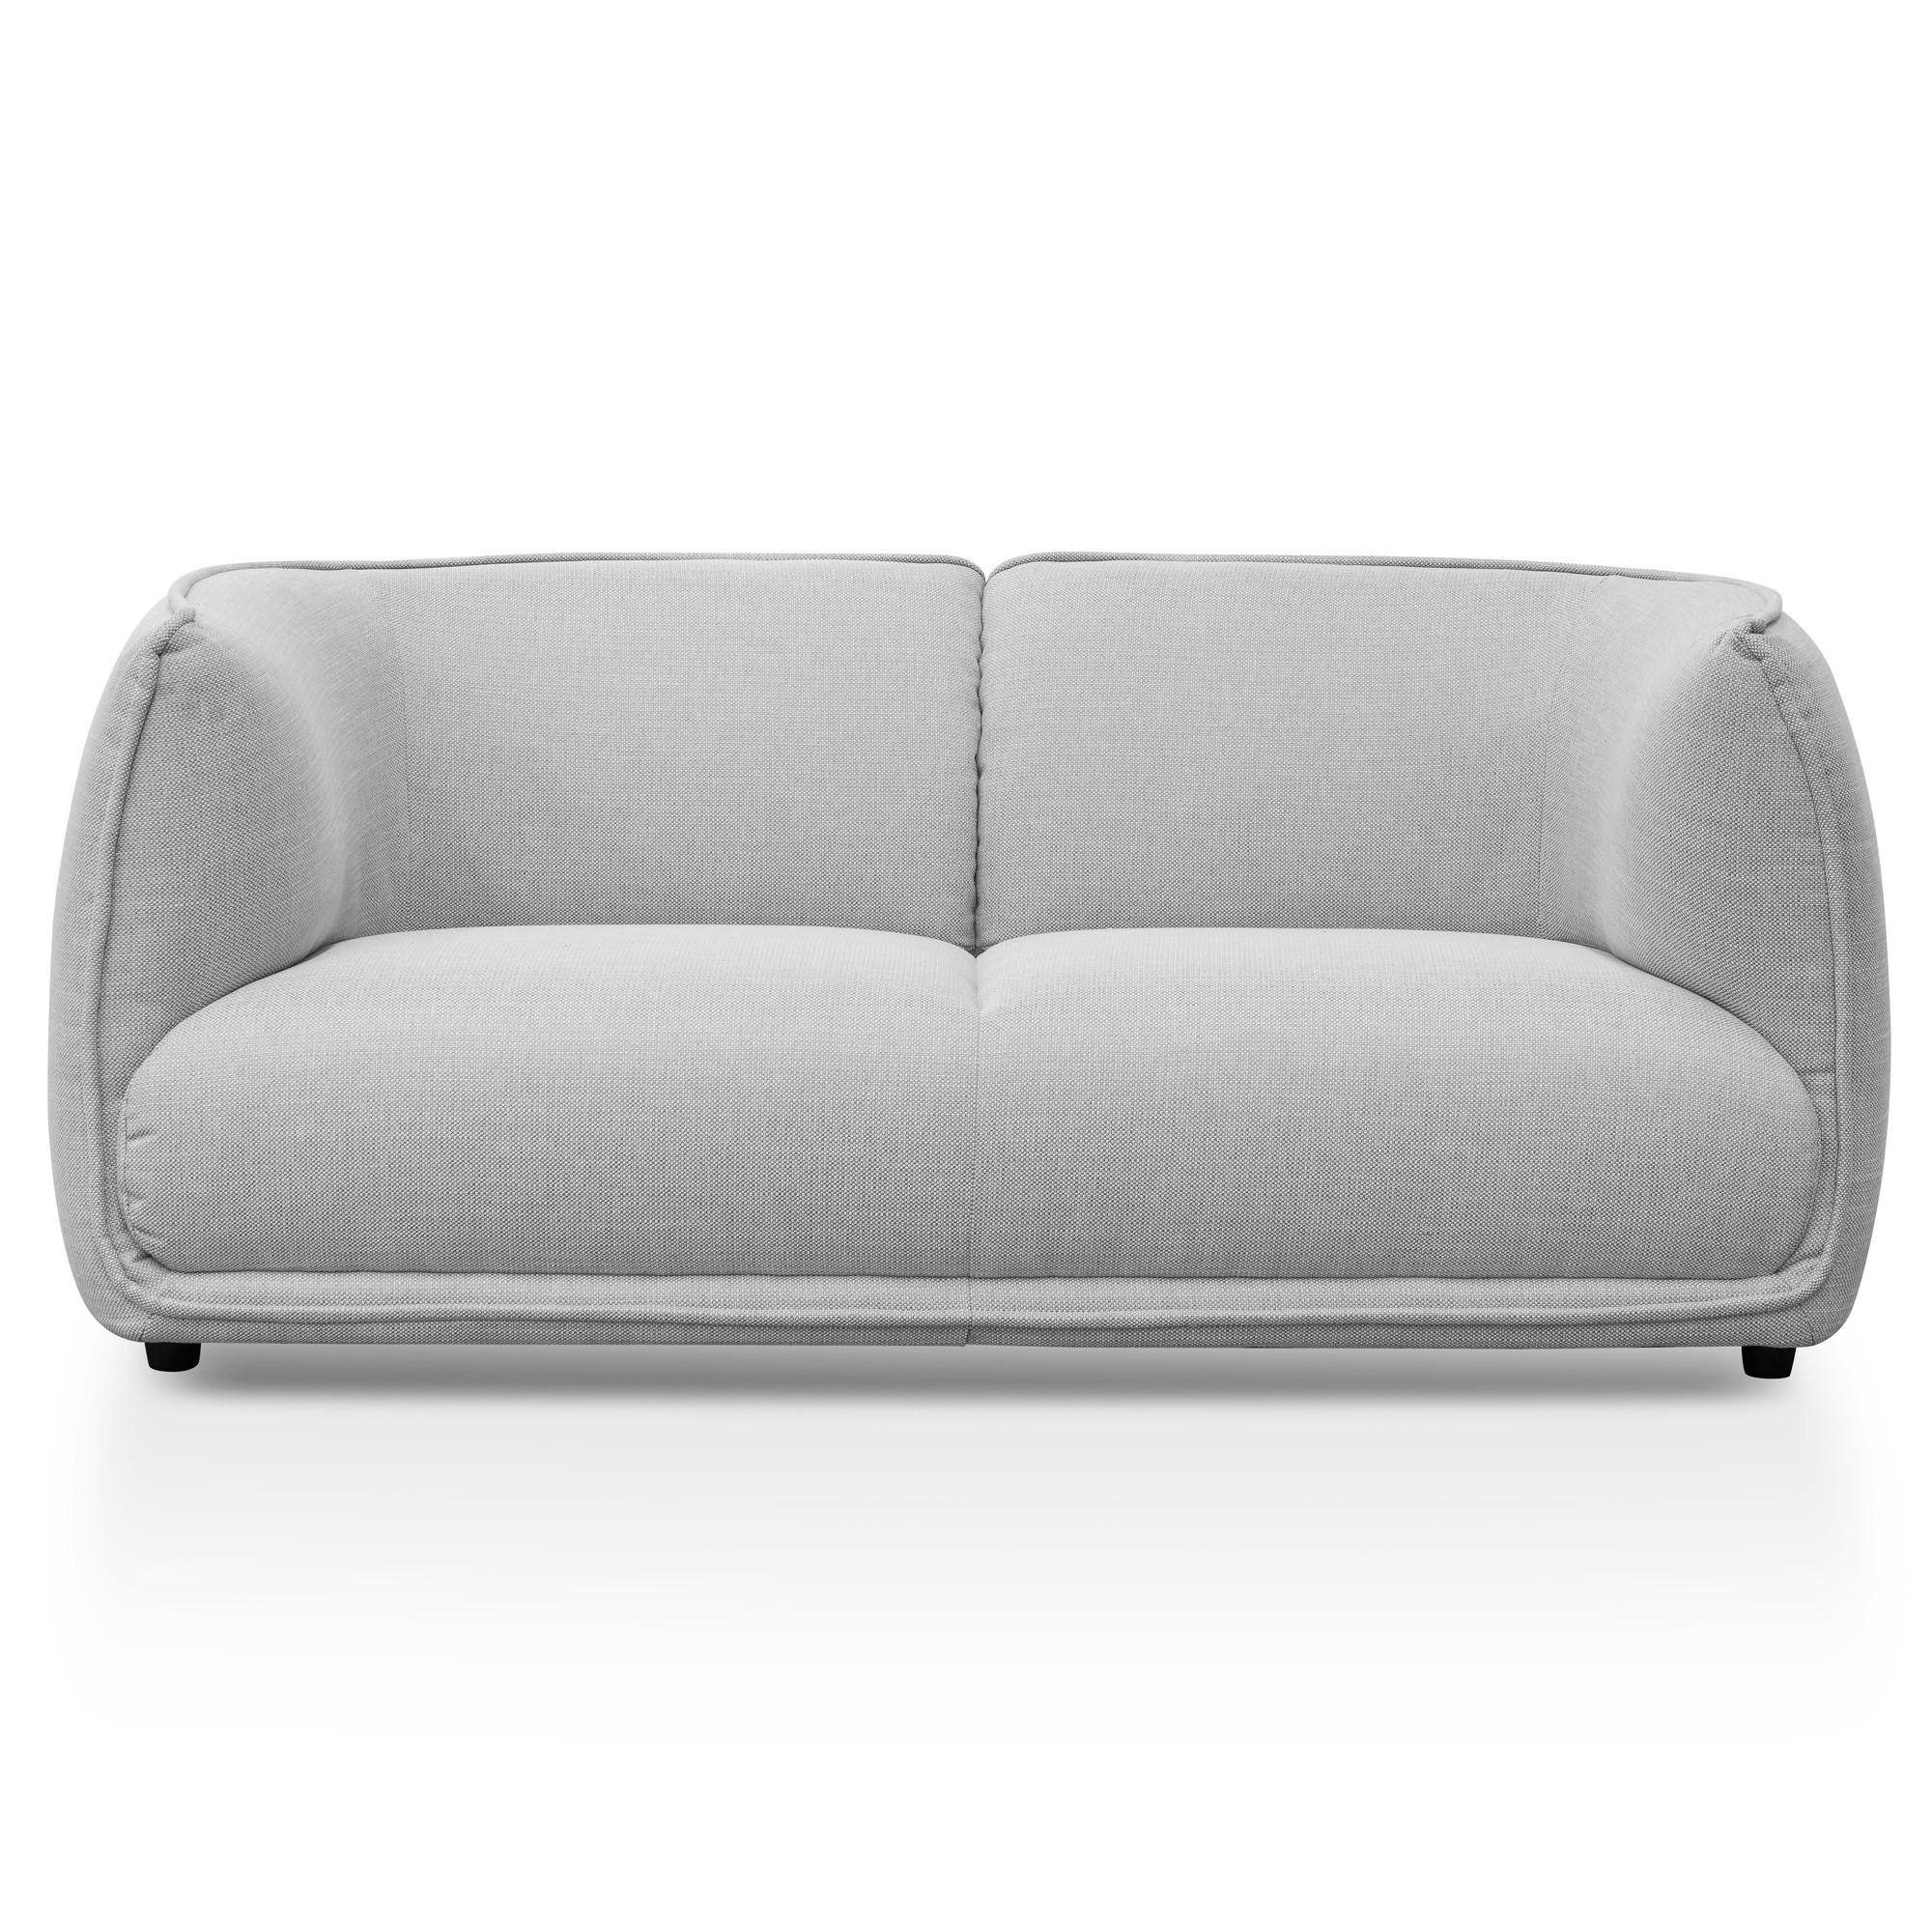 Elza Fabric Sofa, 2 Seater, Light Grey